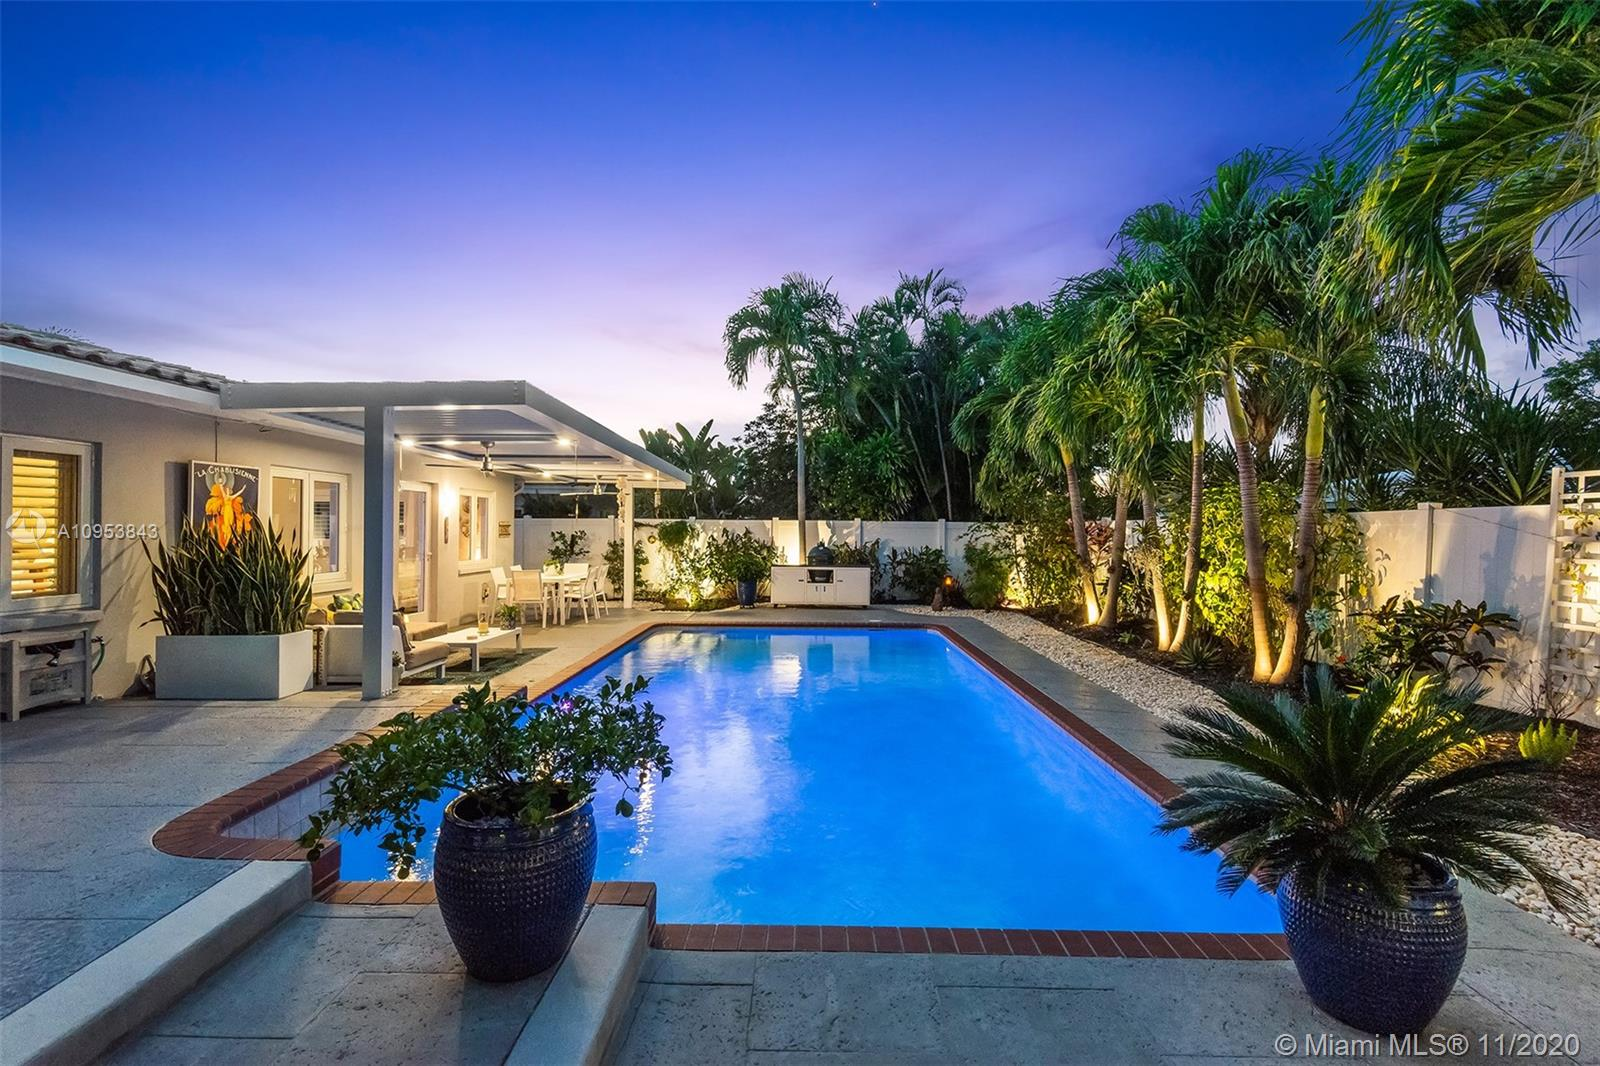 Stunning modern masterpiece! Updated 3/2 pool home in NE Fort Lauderdale! Great curb appeal, lush landscaping & a large pool! Brand New beautiful porcelain floors through out the entire home! The updated kitchen adjoins a spacious dining room & family room opening to a private pool & patio with a fully fenced in back yard! Impact Windows & Doors Throughout! 2 Car Garage with electric car hookup + many more upgrades. Great Location, Close to Beach, I-95, Shopping and great restaurants! OPEN HOUSE 1/3 from 2-5 pm